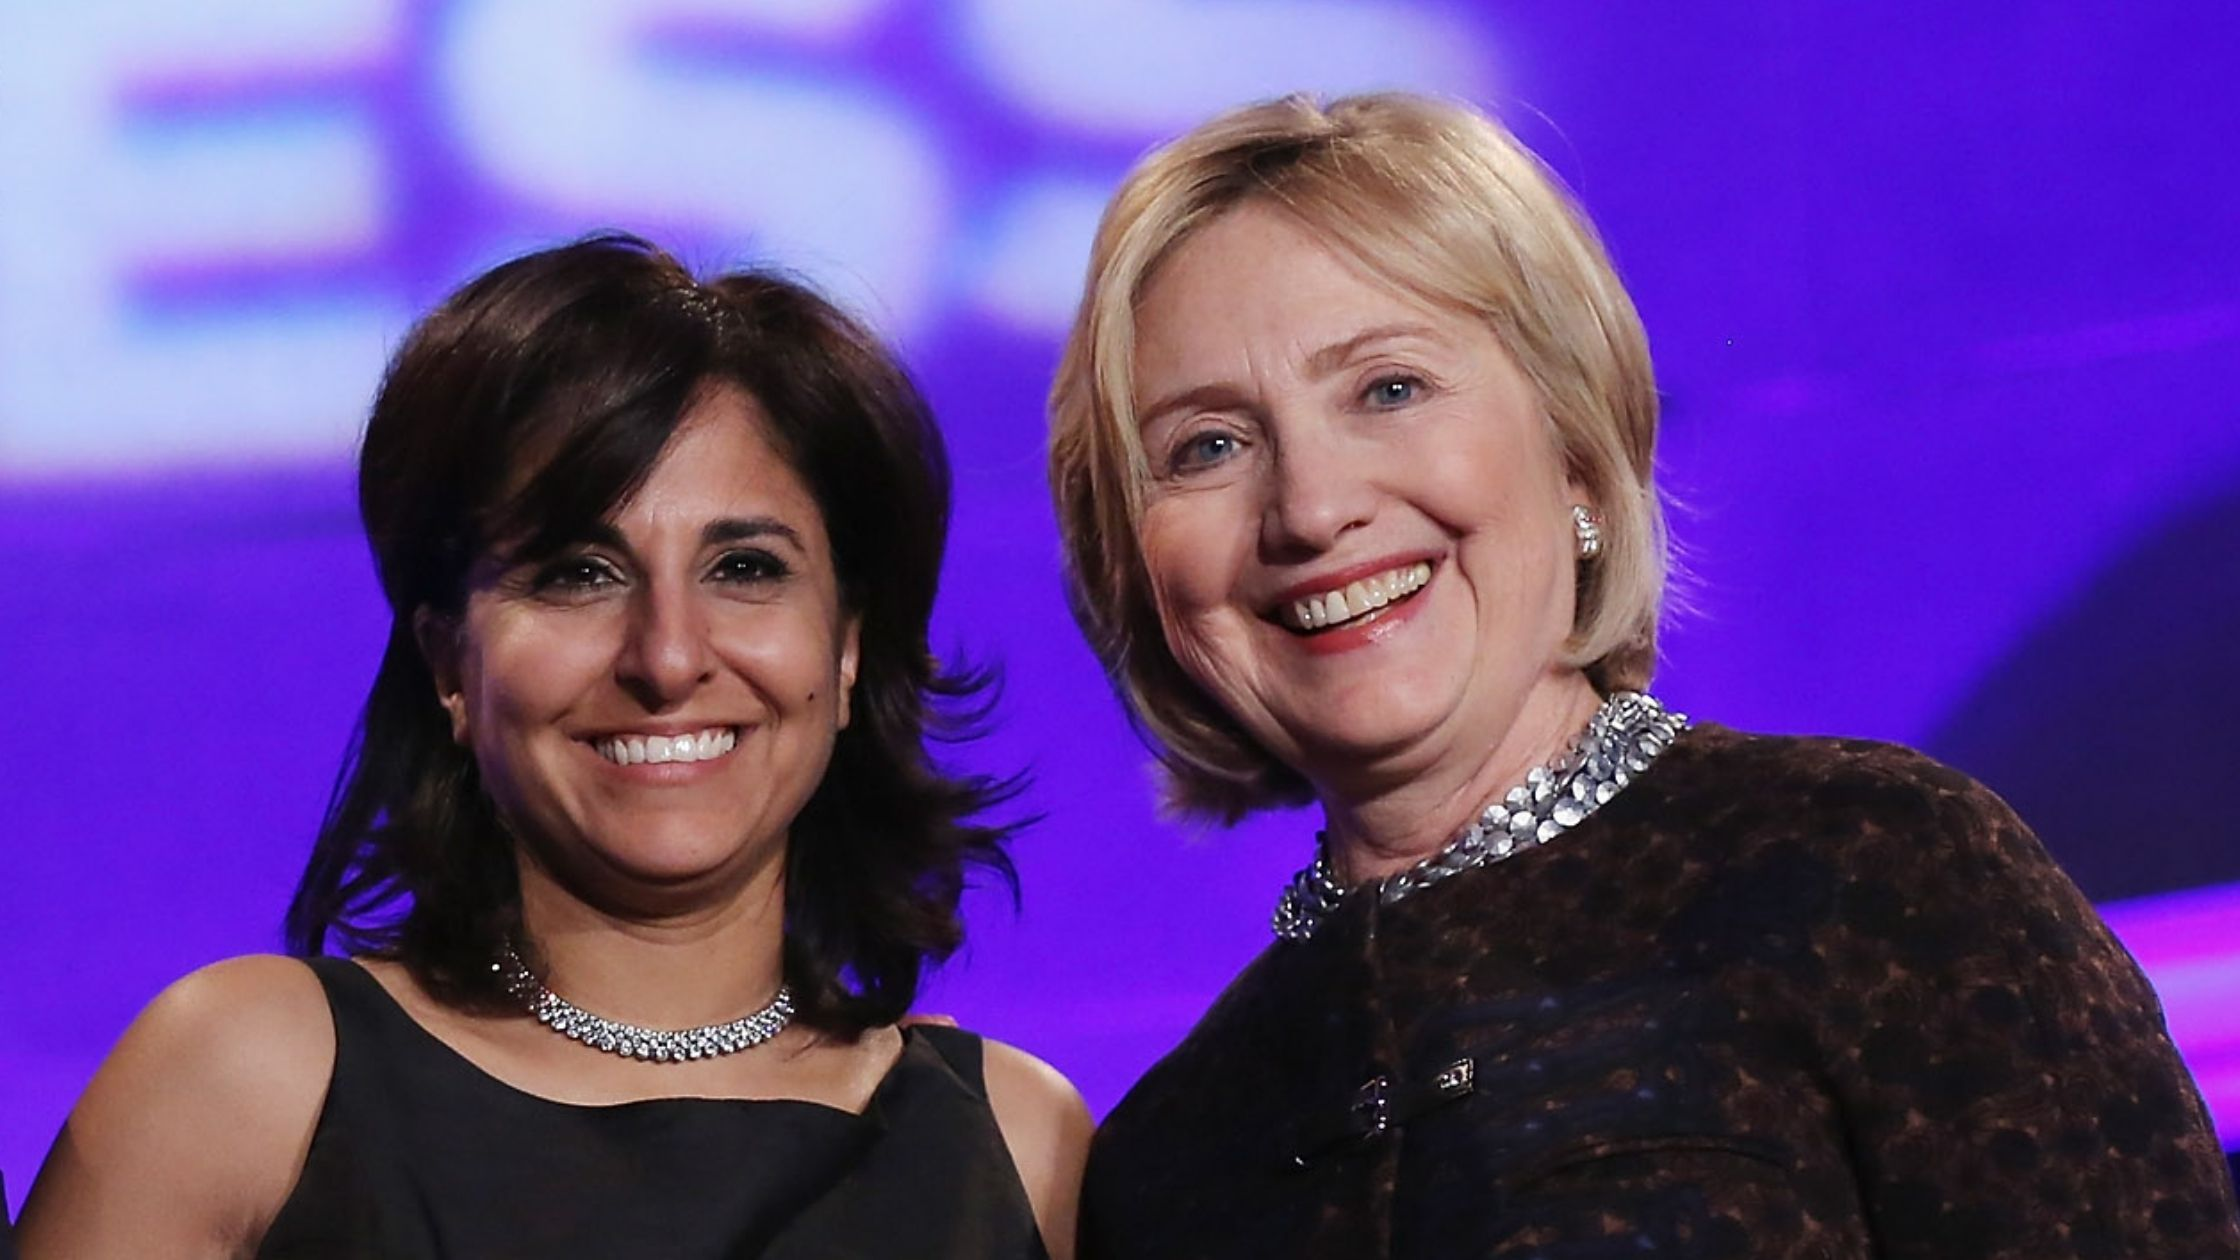 Neera Tanden, left, and former Secretary of State Hillary Clinton, right, pose for photographs at the Mellon Auditorium on Oct. 24, 2013 in Washington D.C.